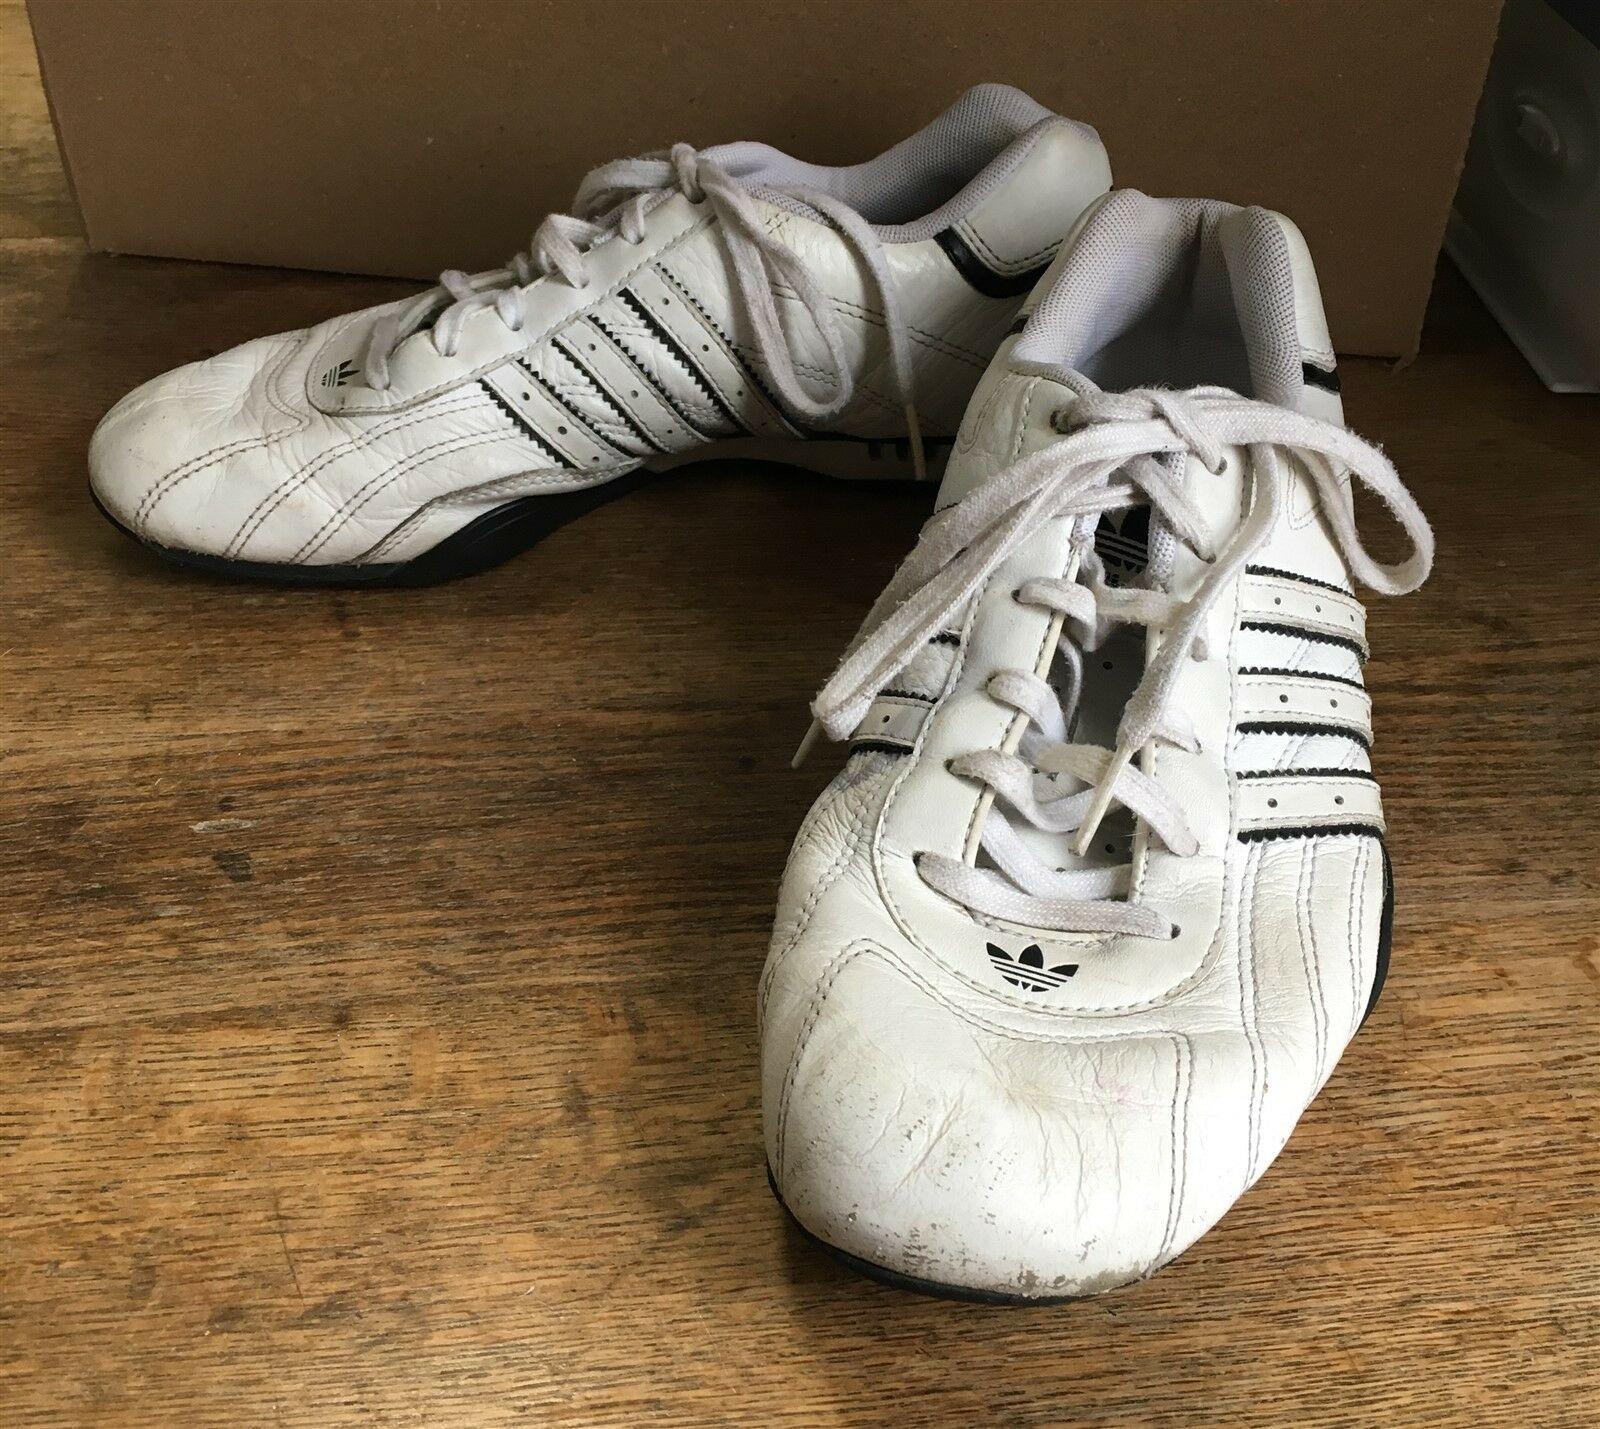 4c1f3d6be7a Adidas Adidas Adidas Team Adi Racer Goodyear Racing Driving Athletic Shoes  Mens size 7 used 686f03